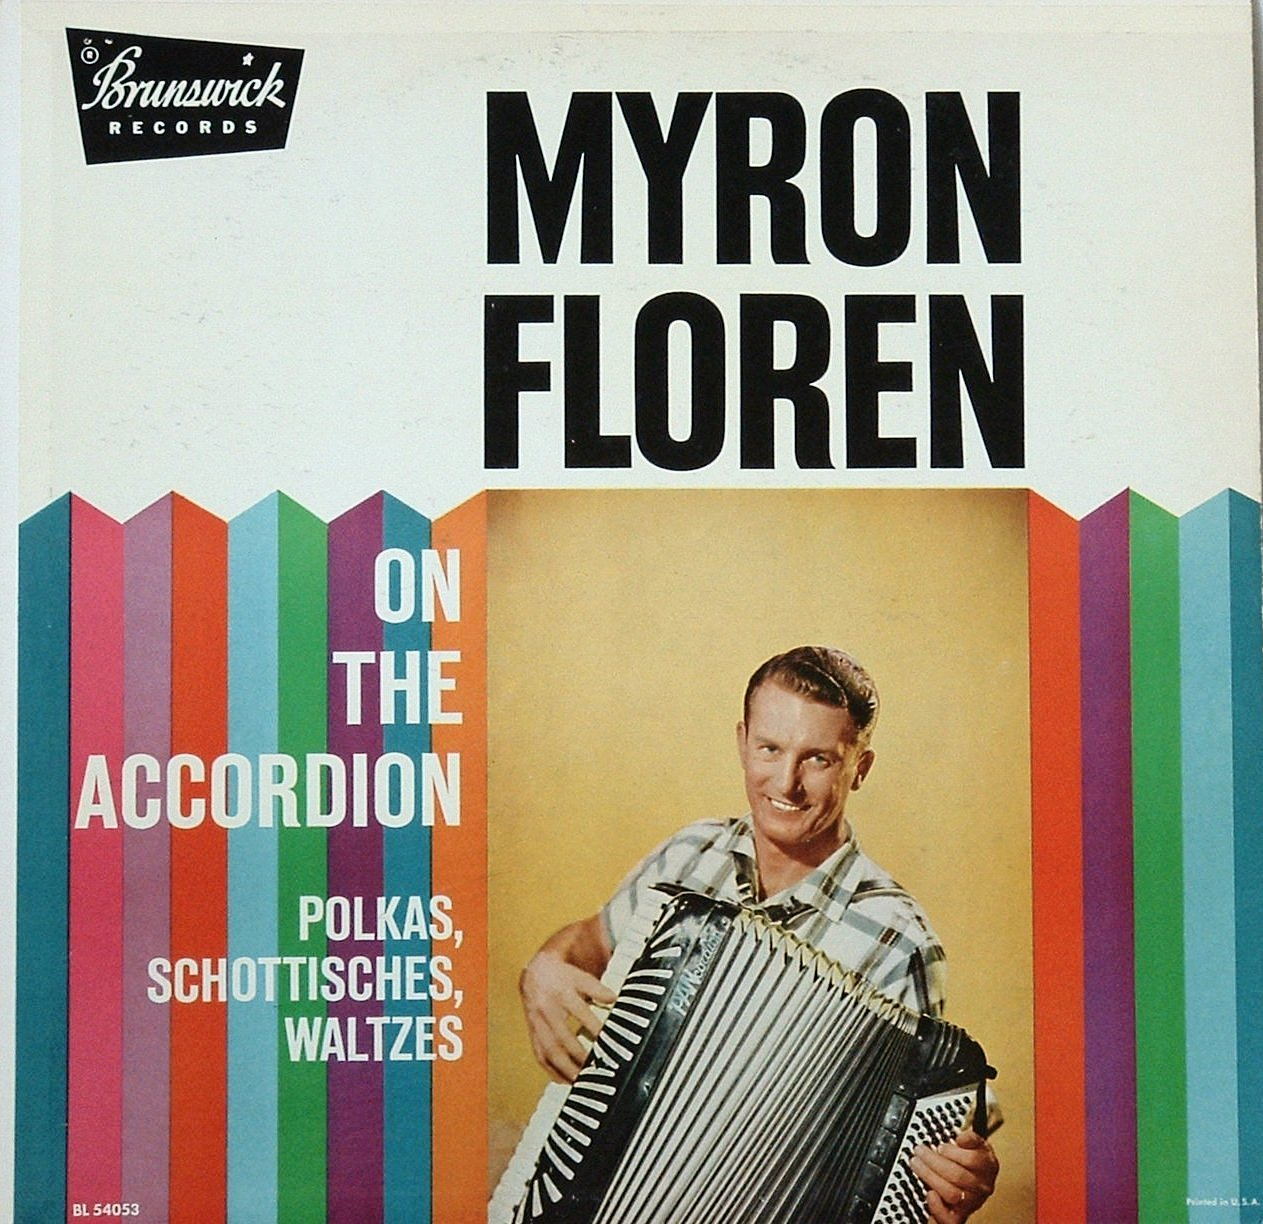 MyronFlorenOnAccordion1